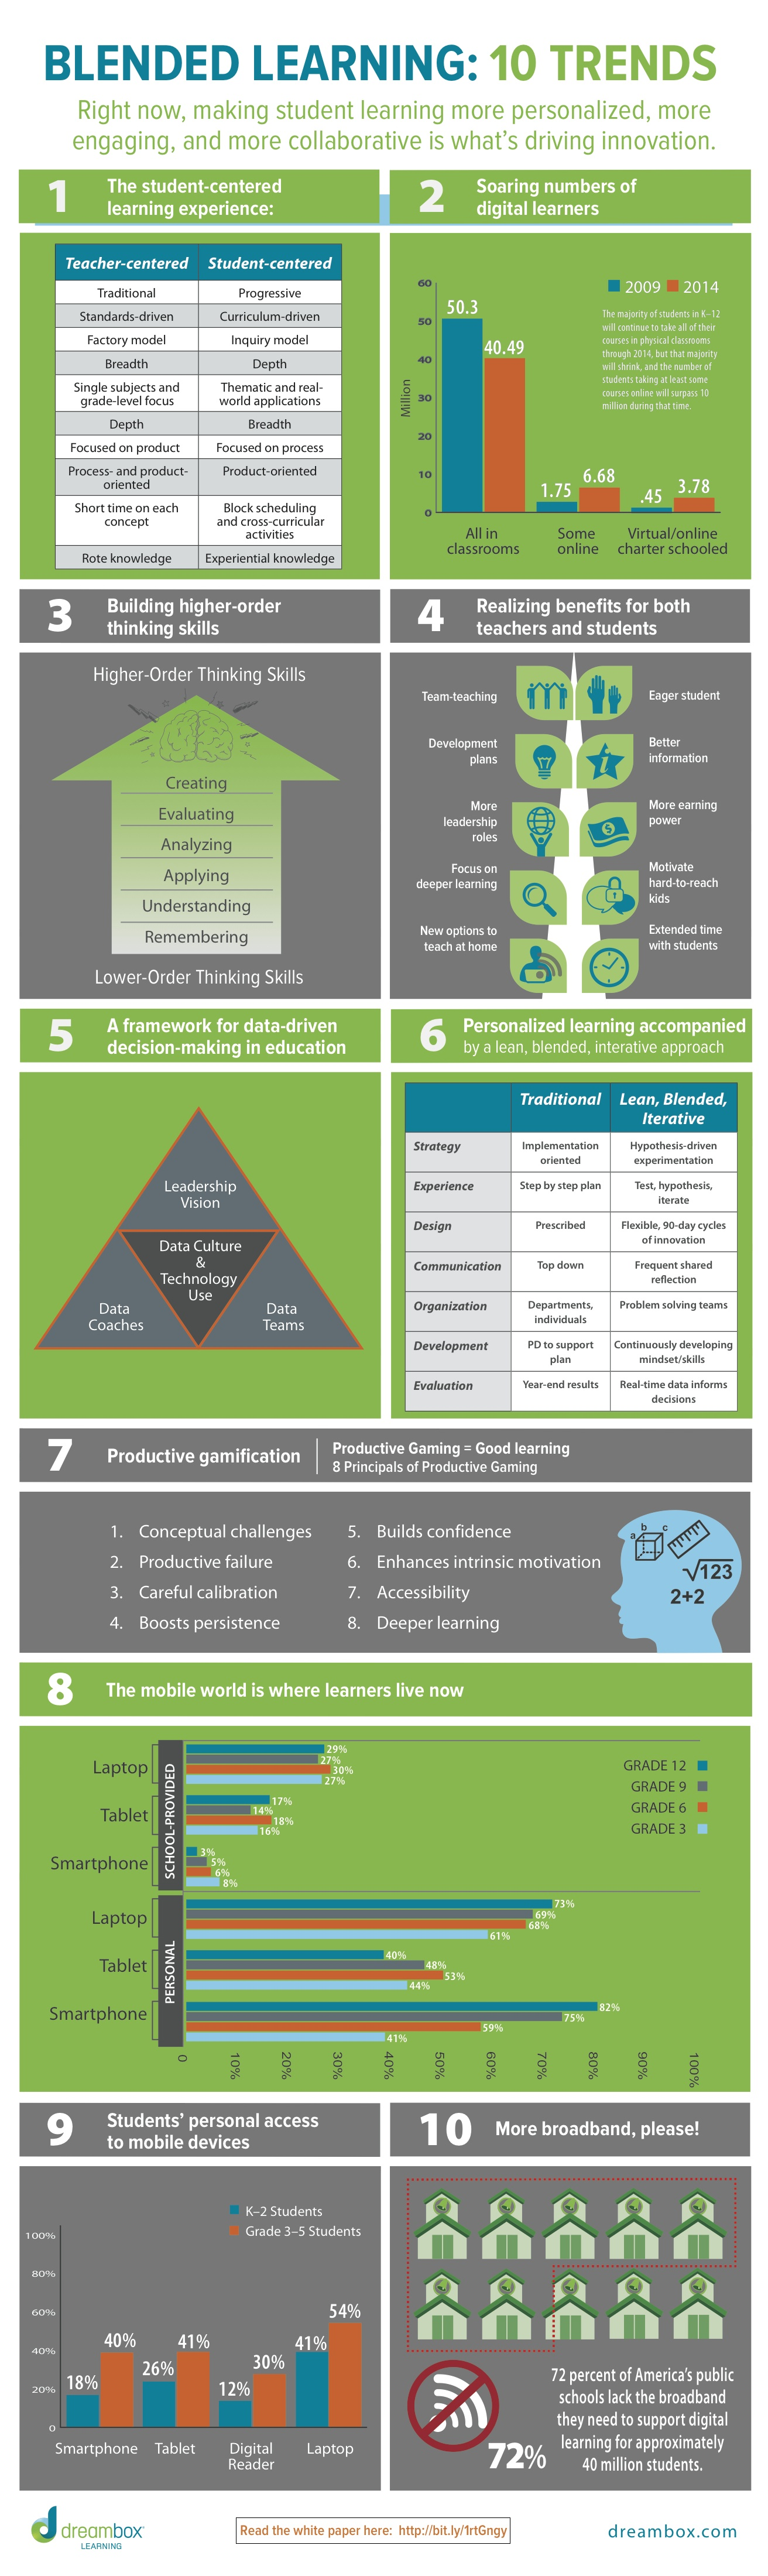 10 Blended Learning Trends Infographic